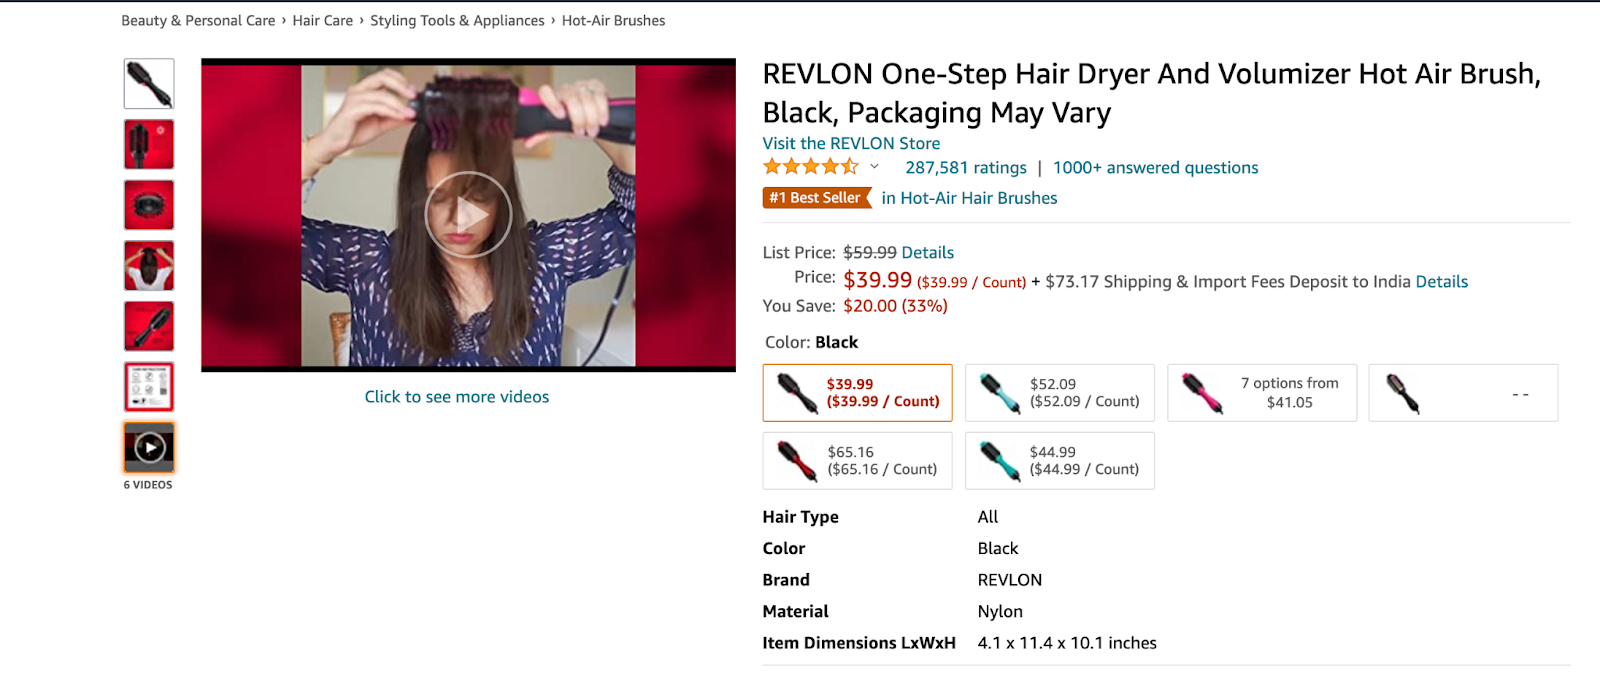 video based product descriptions on Amazon.